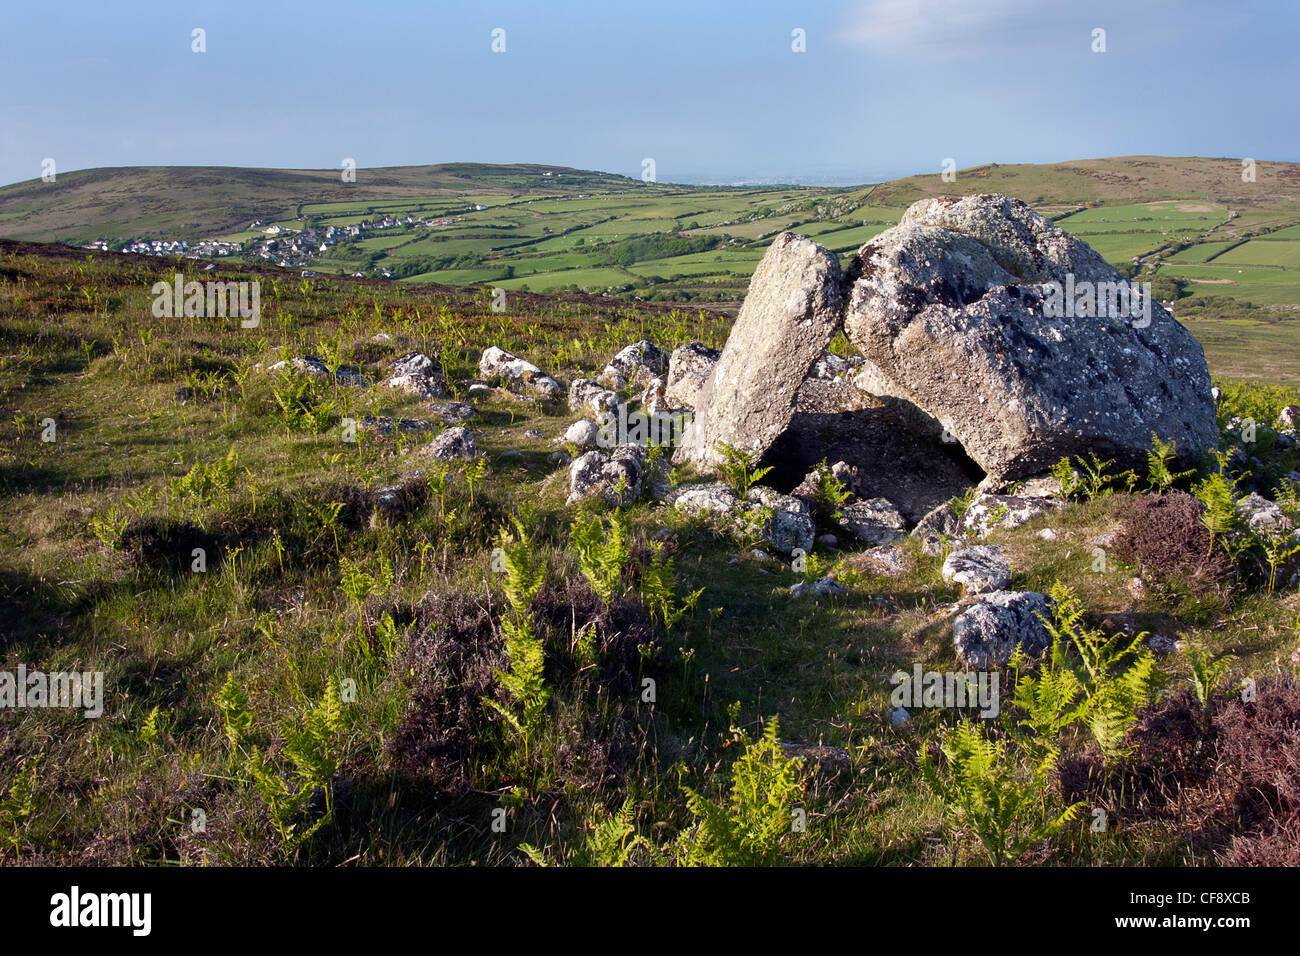 Sweynes Howes are standing stones and a burial chamber at Rhossili Down. - Stock Image